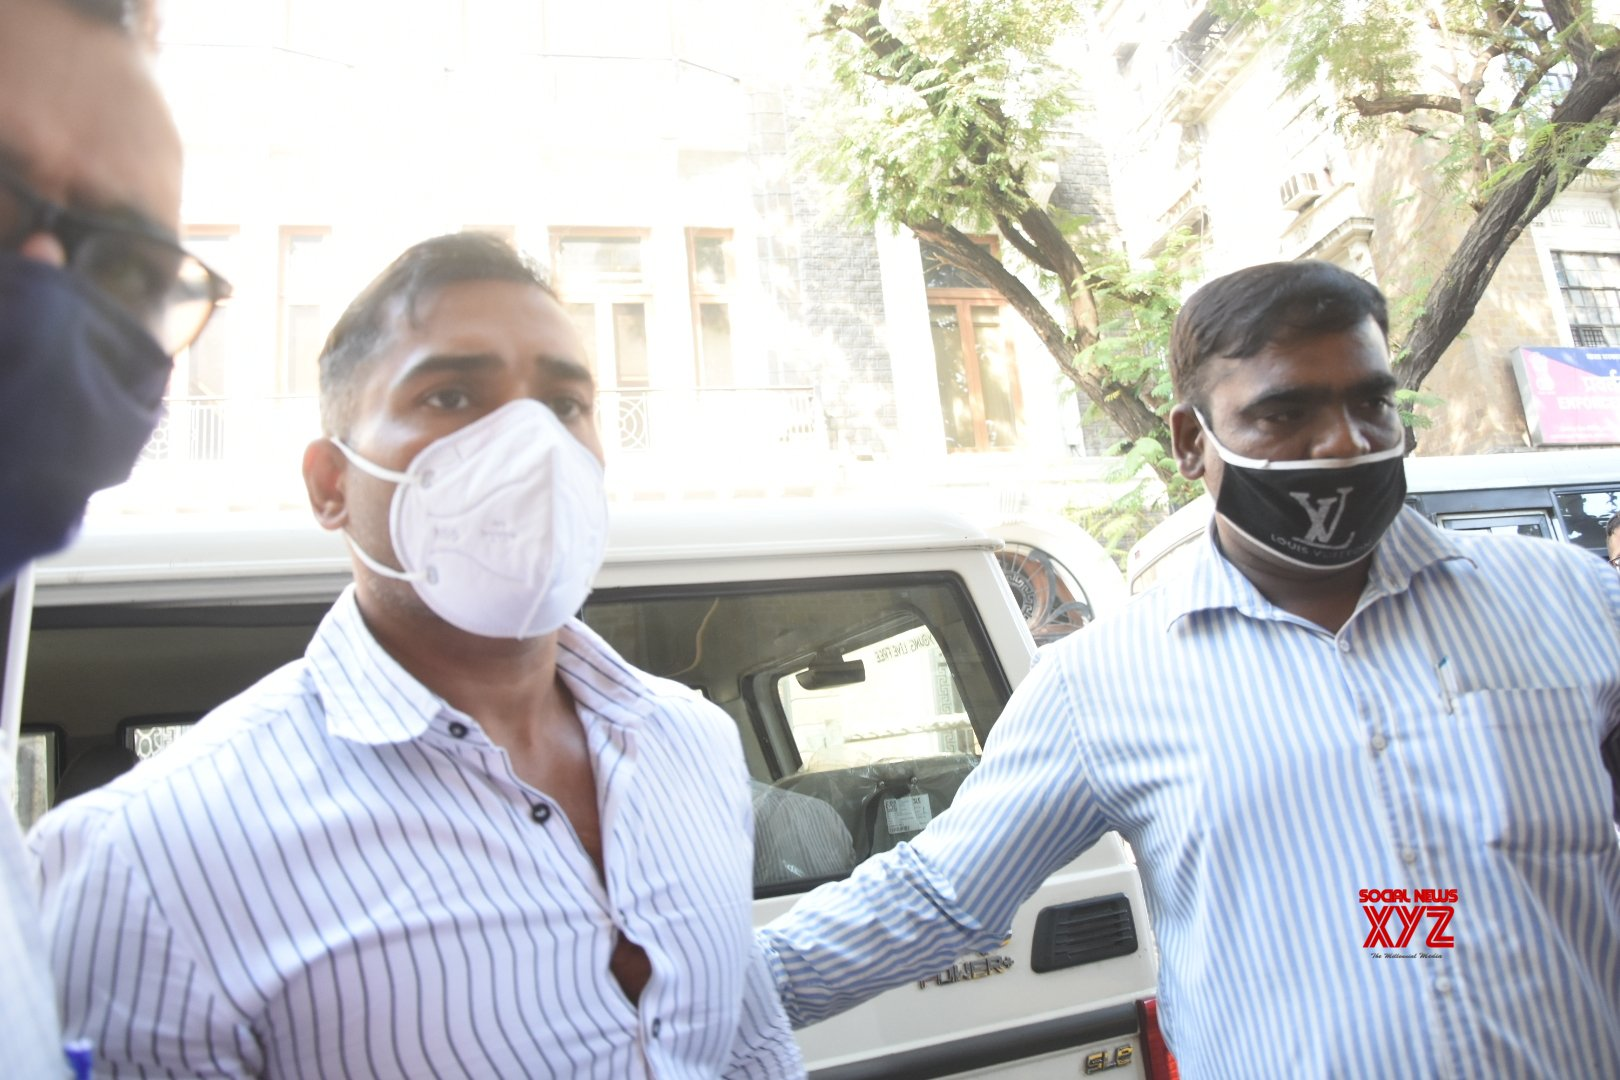 Mumbai: Drugs case: NCB raids residence of Maha minister's son - in - law #Gallery